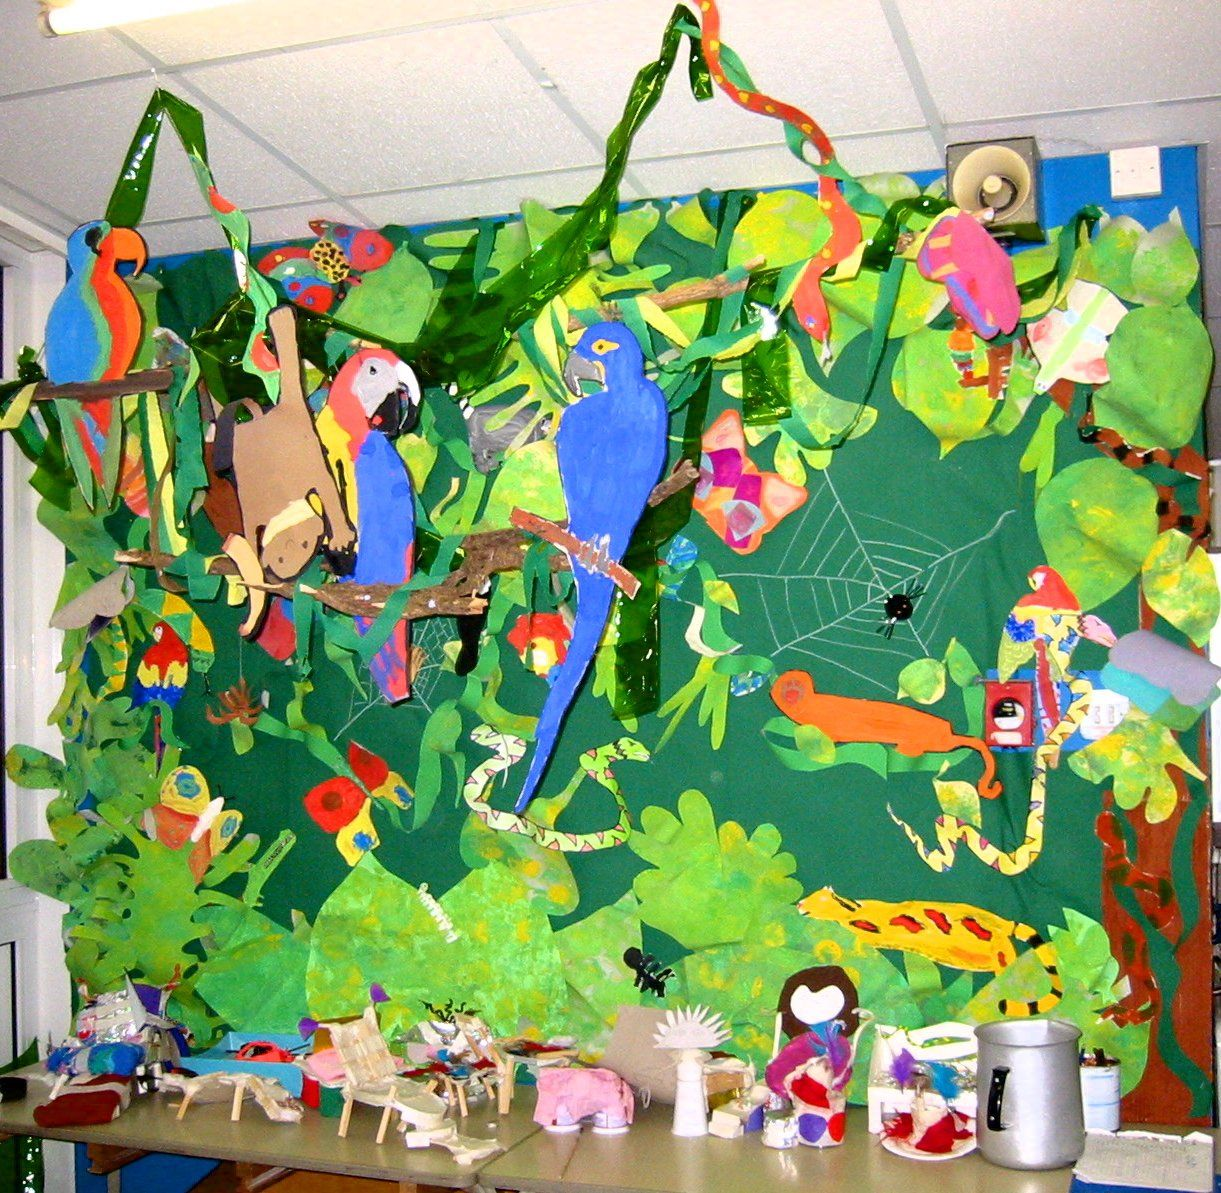 Rainforest Art Ideas For Primary School